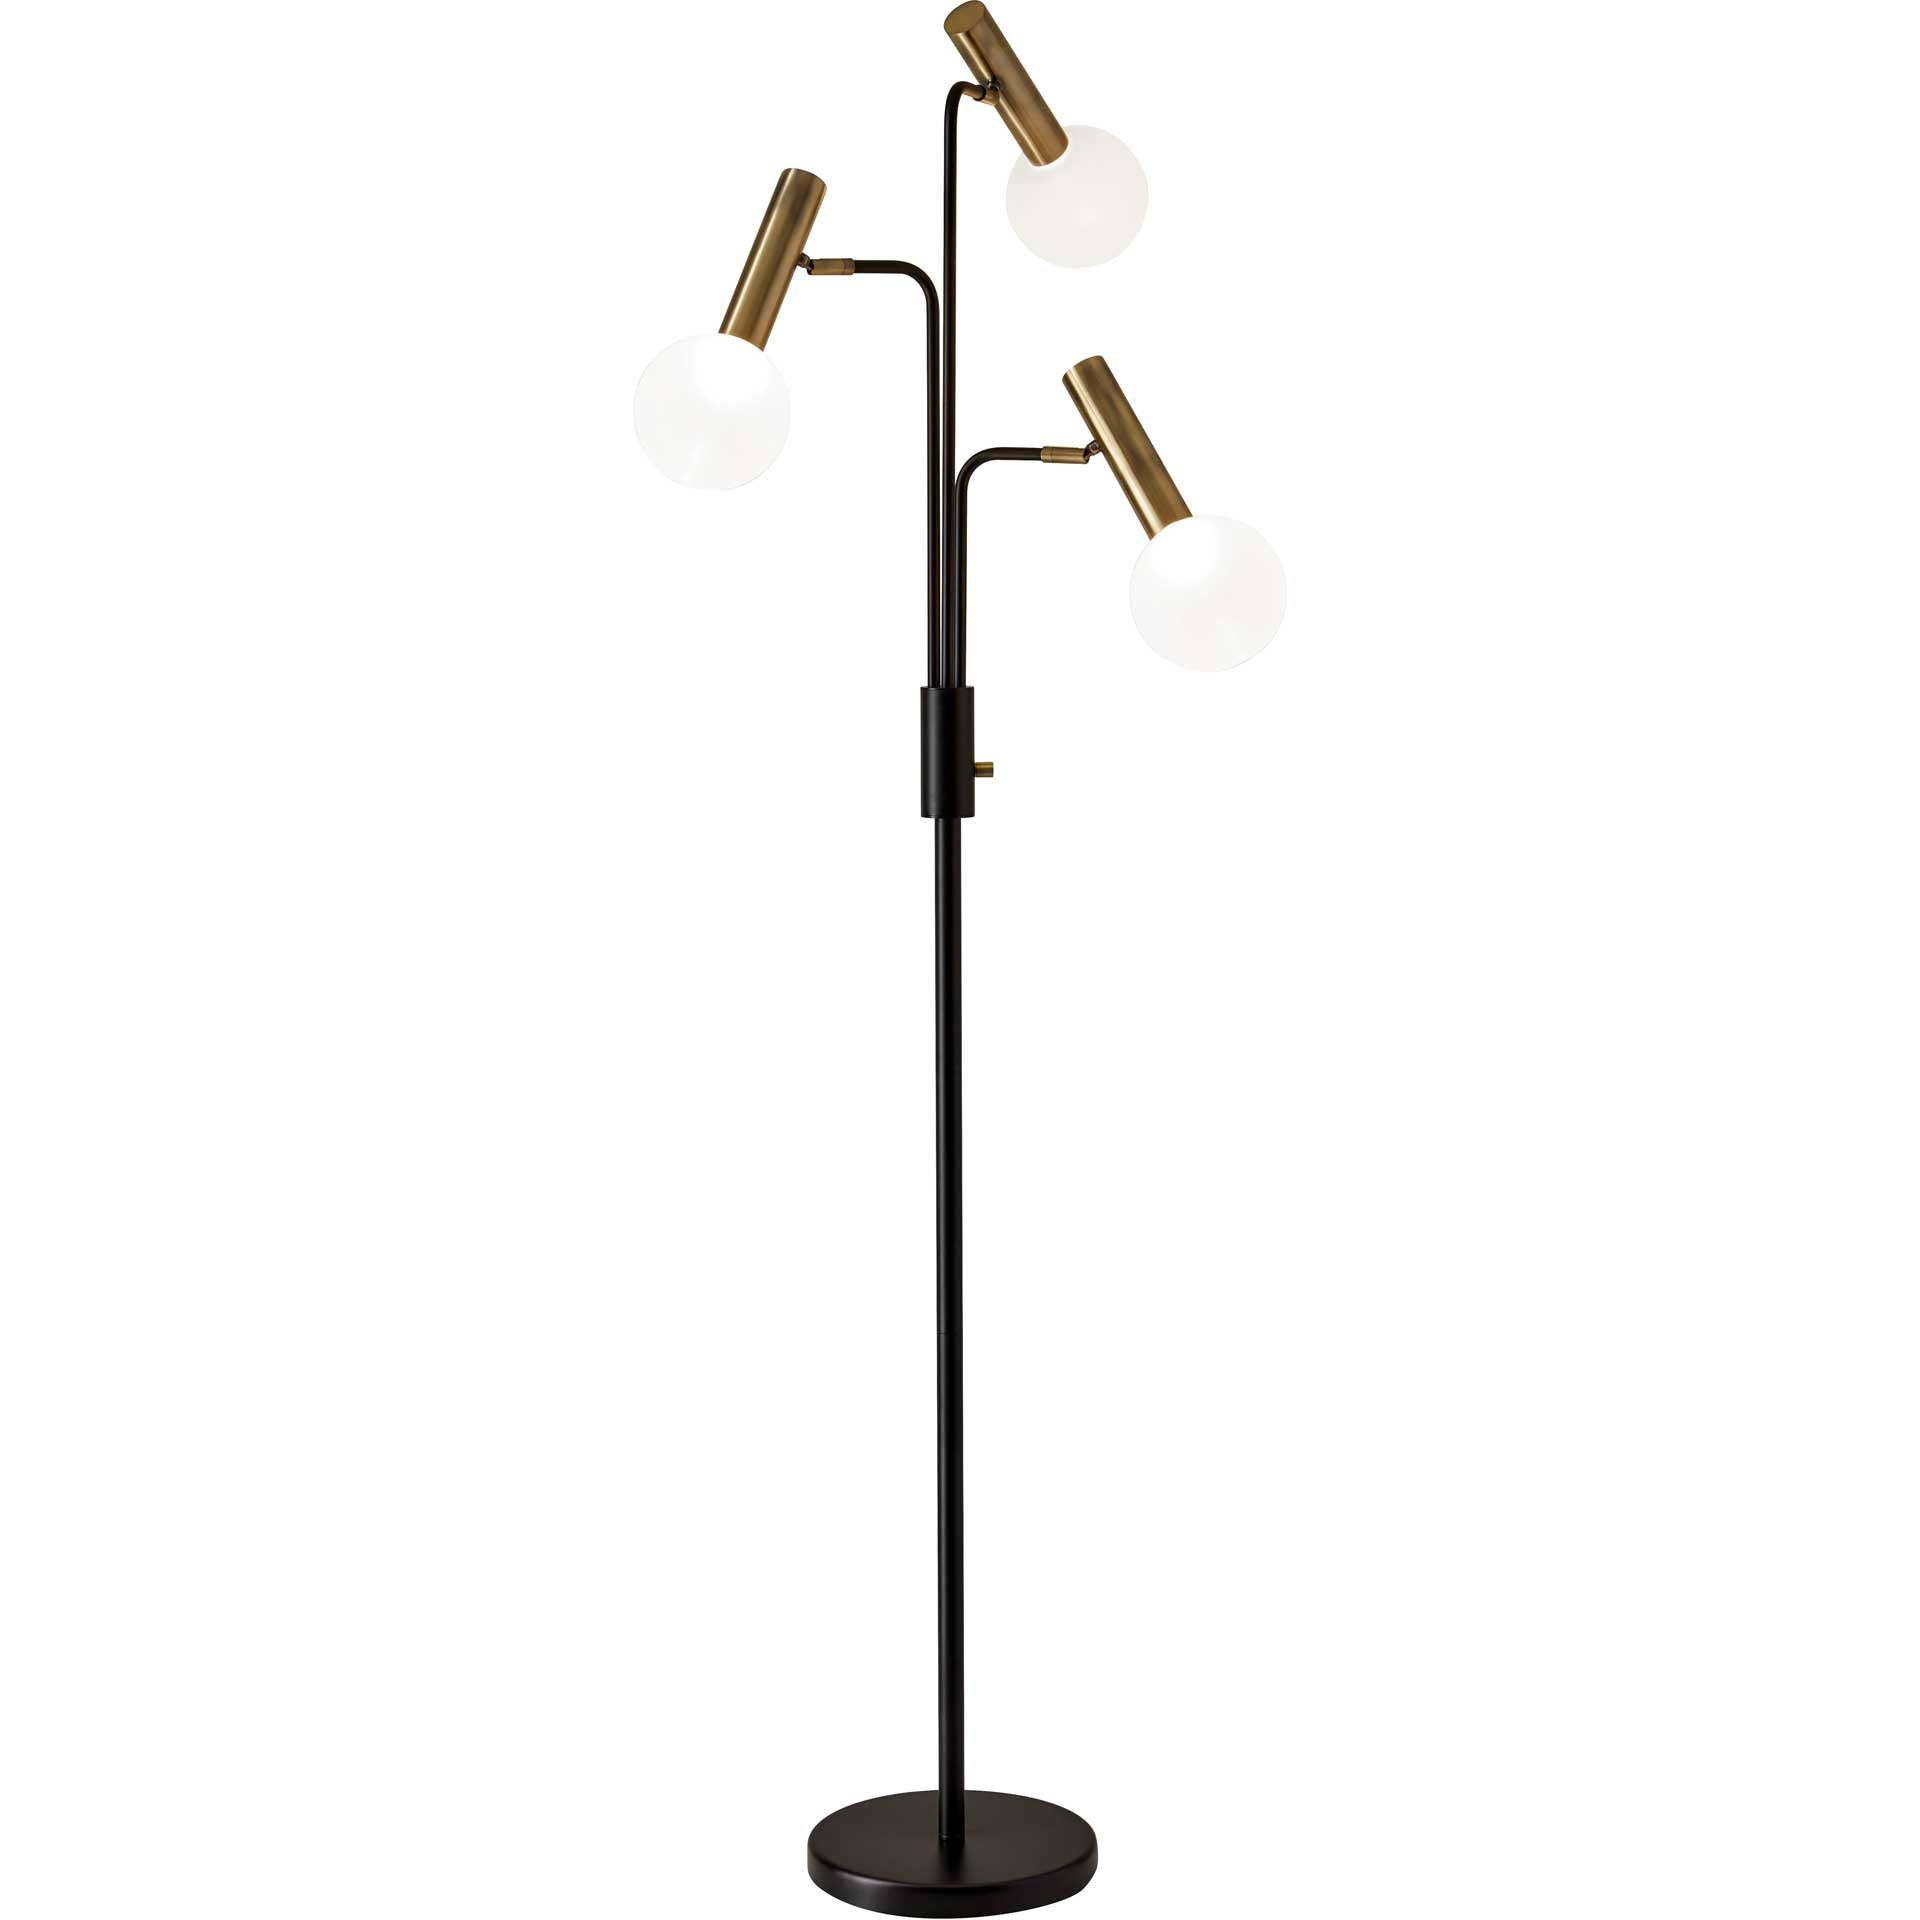 Simon LED 3-Arm Floor Lamp Black/Brass